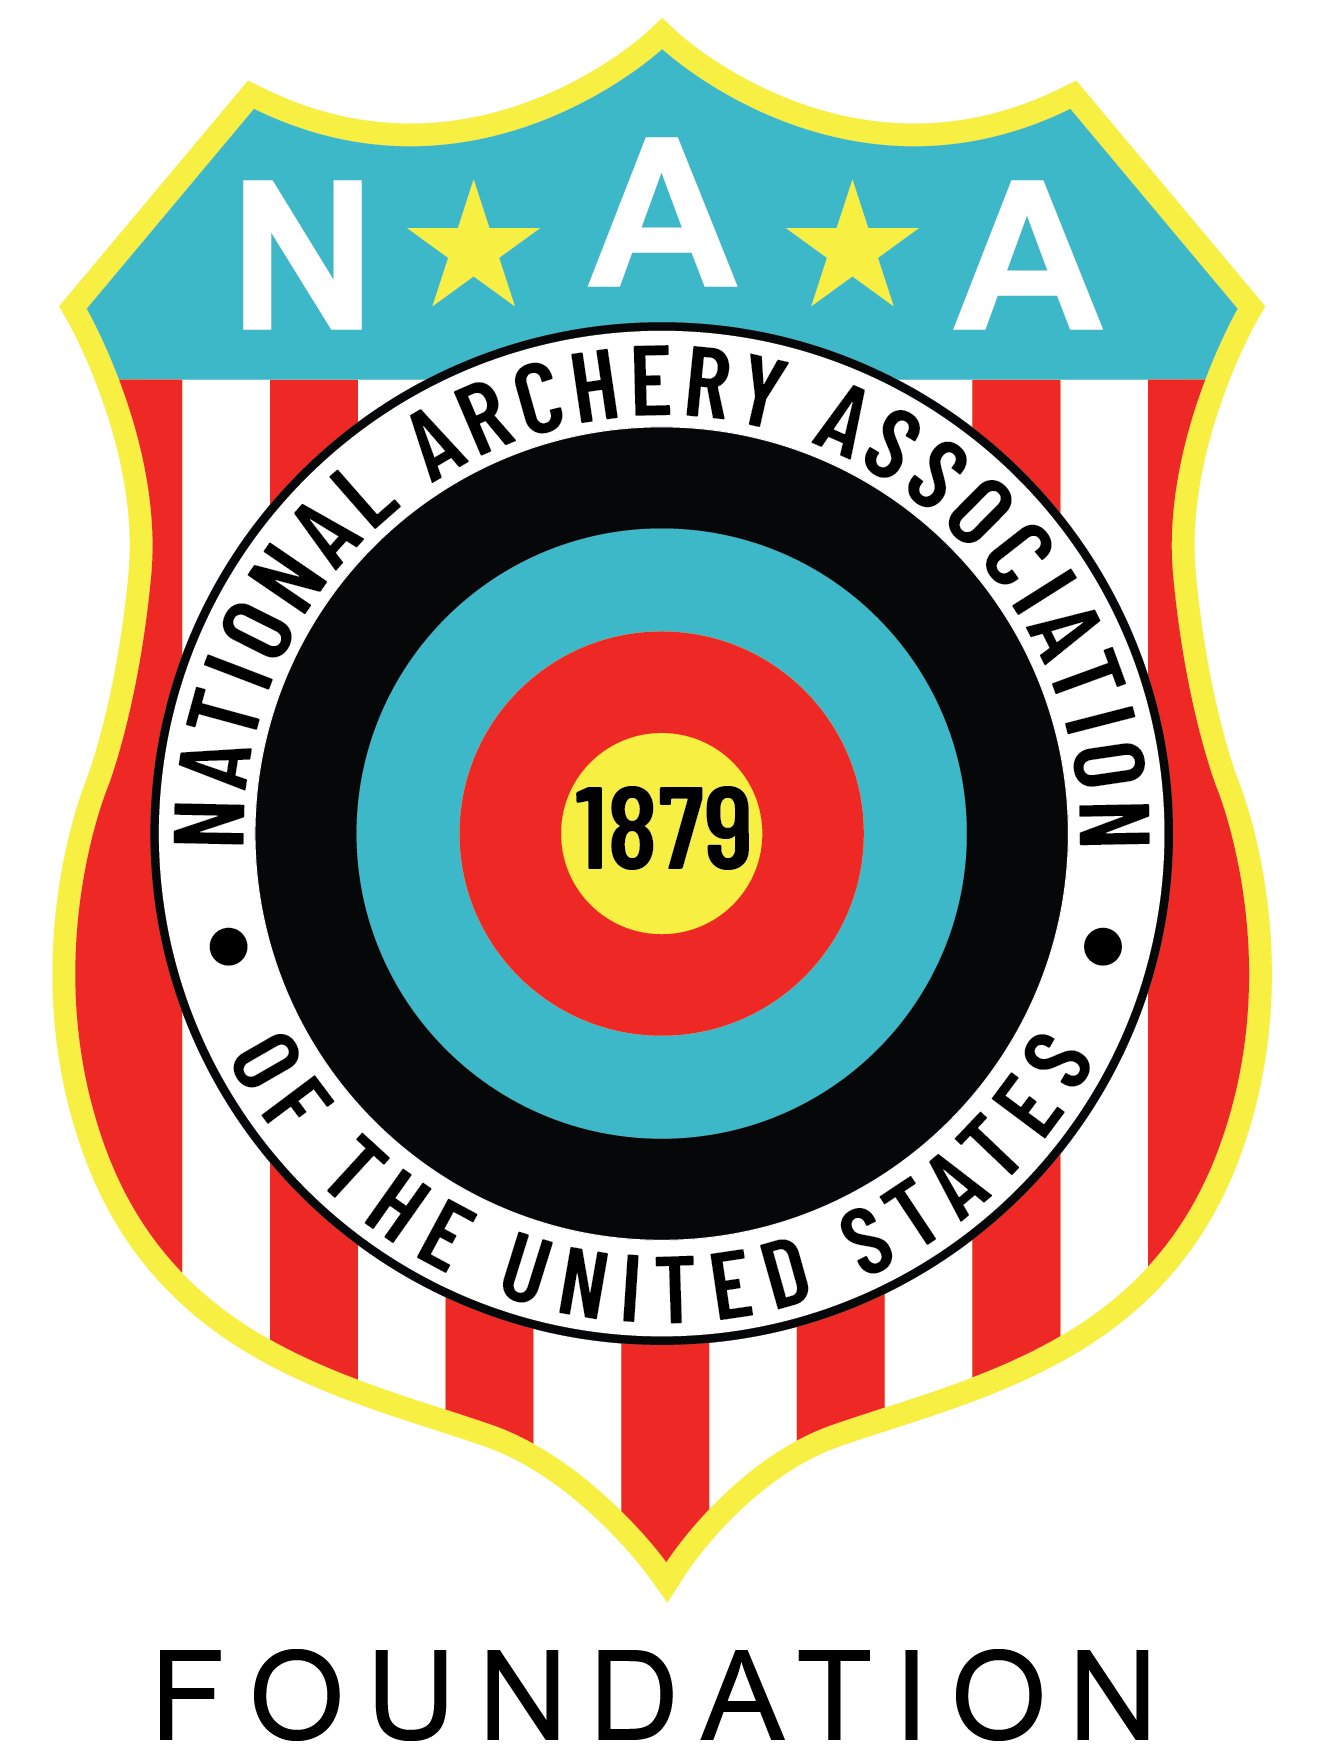 National Archery Association Foundations logo